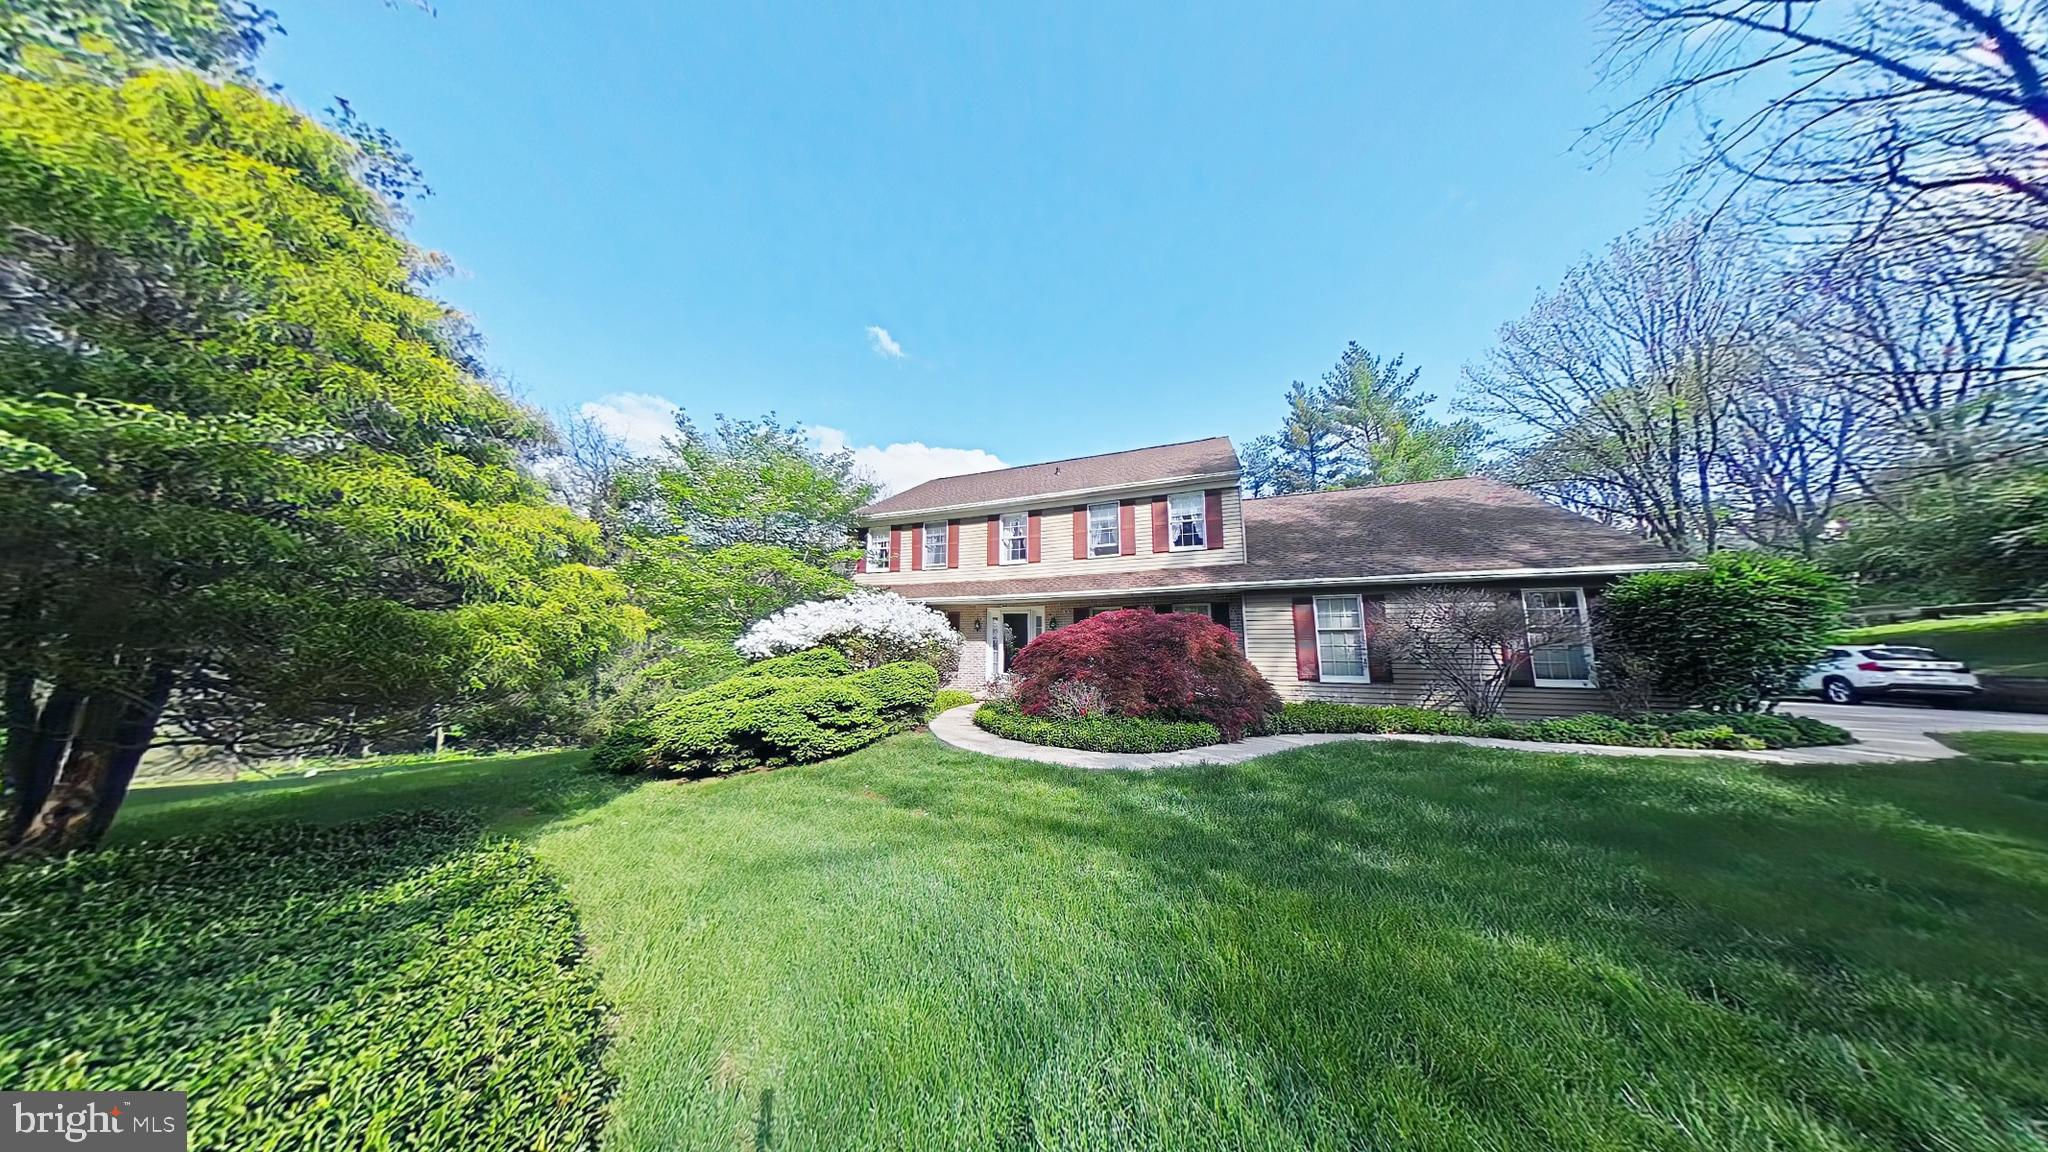 1532 Morgan Lane, Chesterbrook, PA 19087 now has a new price of $750,000!